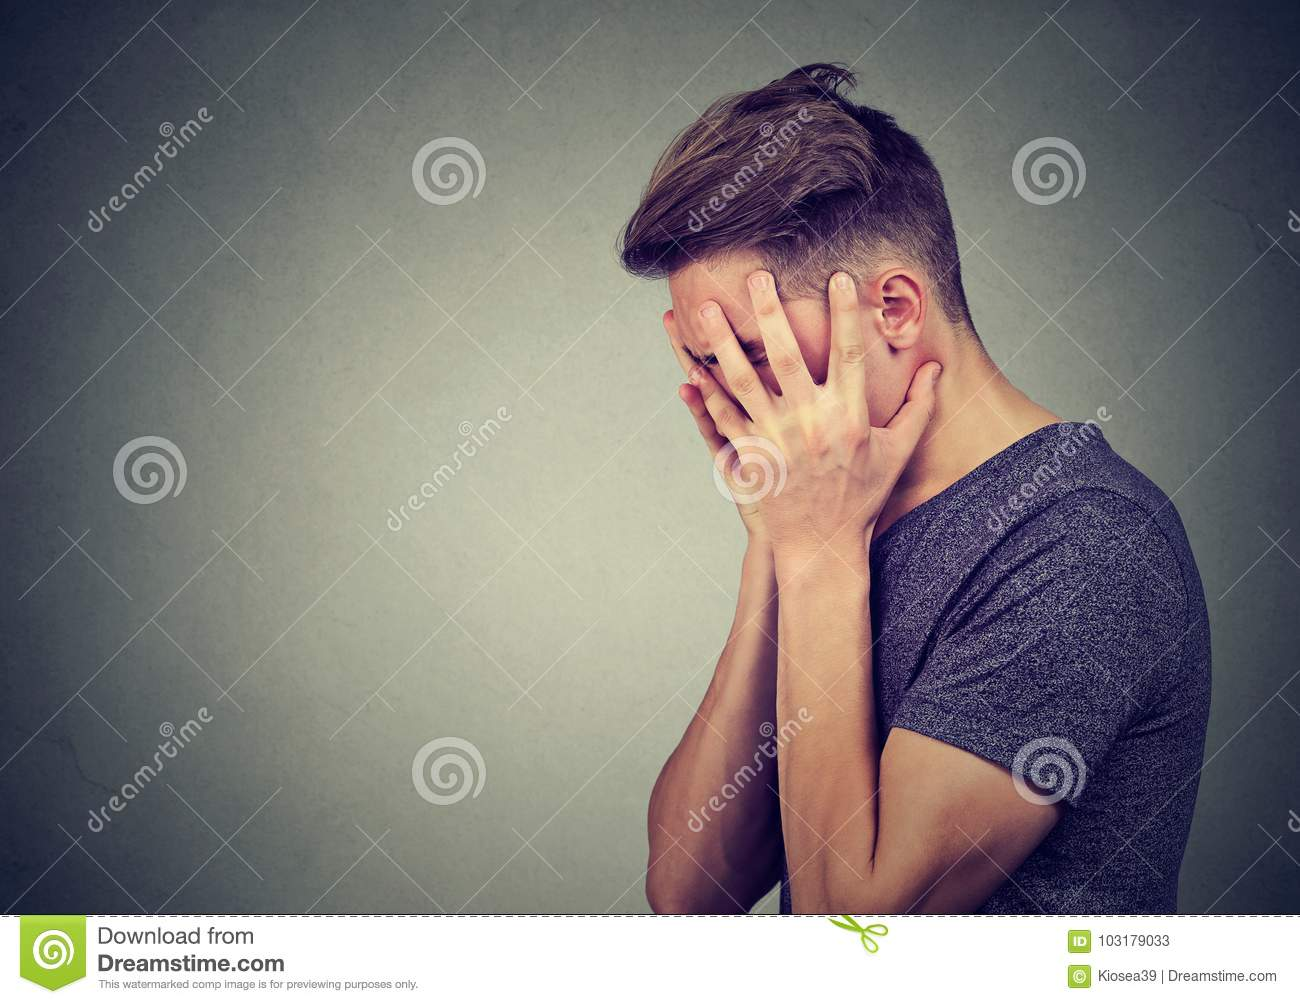 Side profile of a sad young man with hands on face looking down. Depression and anxiety disorder